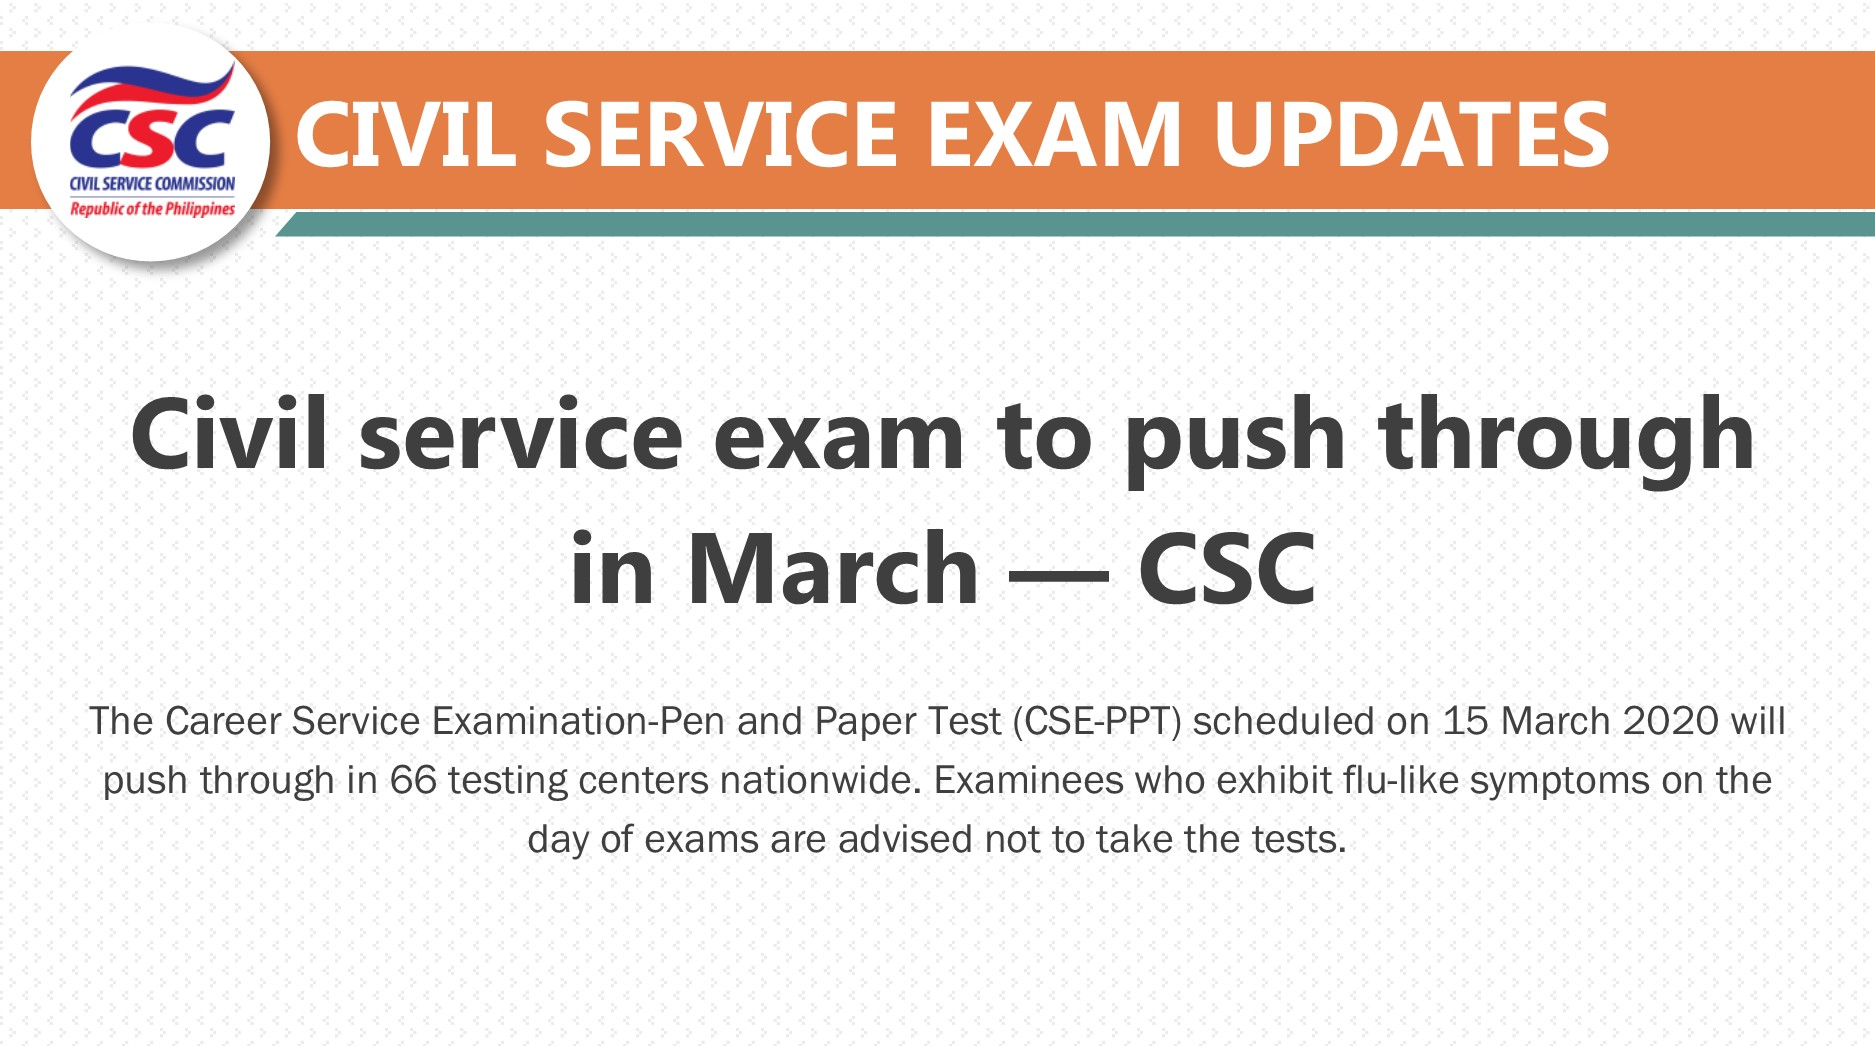 Philippine Civil Service Commission On Twitter Read The Csc Announced That The 15 March 2020 Civil Service Exam Will Push Through As Scheduled But Advised Examinees Not To Take The Test If